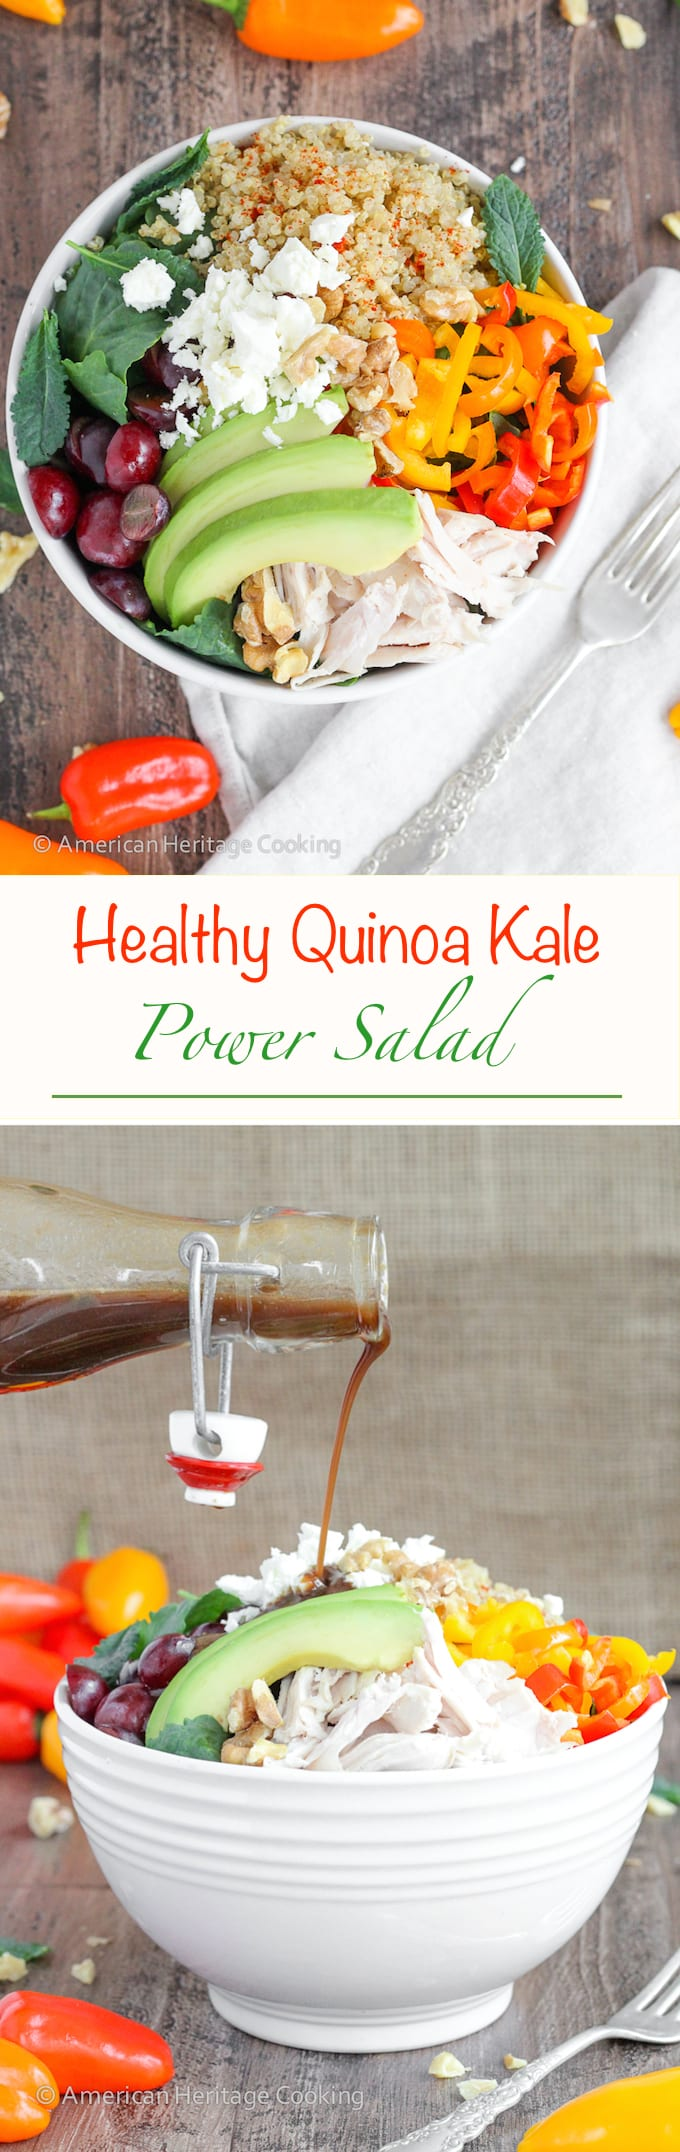 This Quinoa Kale Power Bowl is packed with vitamins, minerals, healthy fats and filling protein! Plus it is a super easy recipe that is perfect for lunch or dinner!